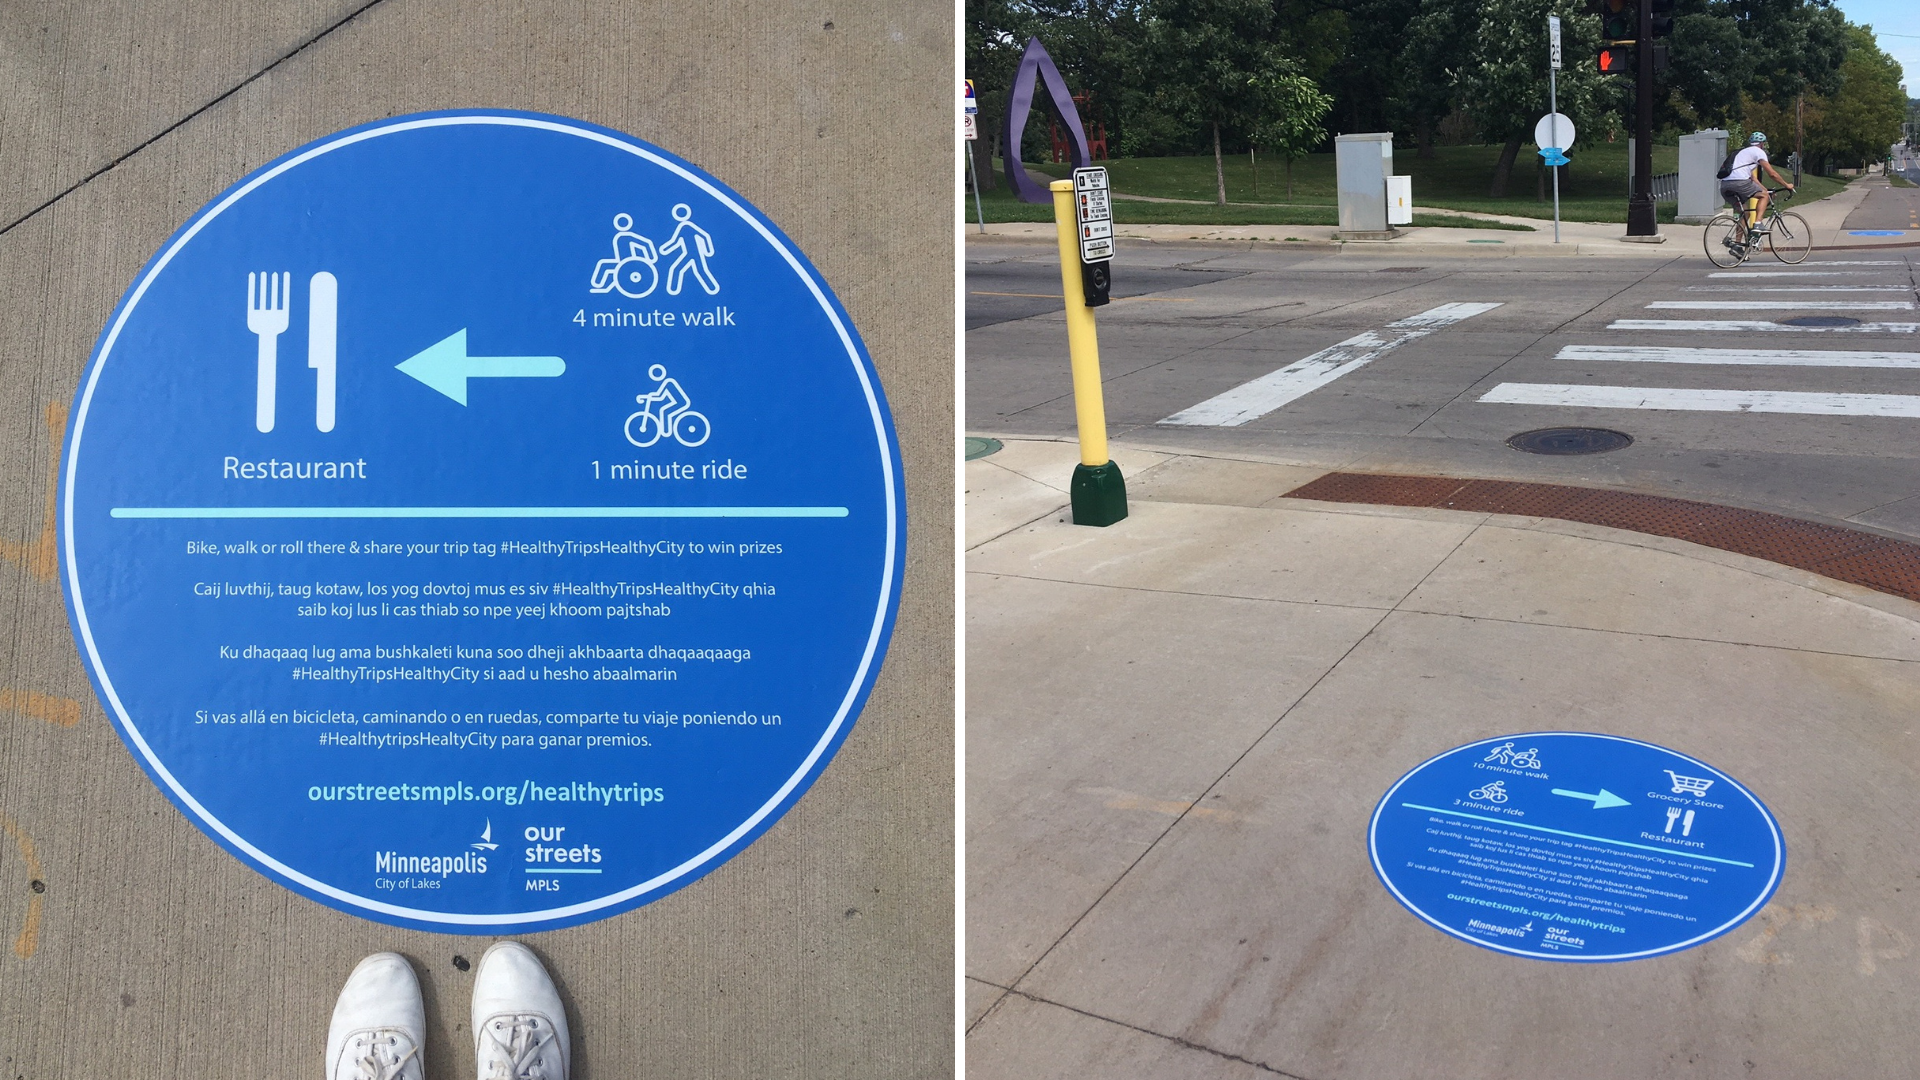 Two photos side by side. On the left is a close-up of a wayfinding decal. On the left is a photo looking across the street at a park. In the foreground is a wayfinding decal, in the background is a person biking on an off-street bike path.